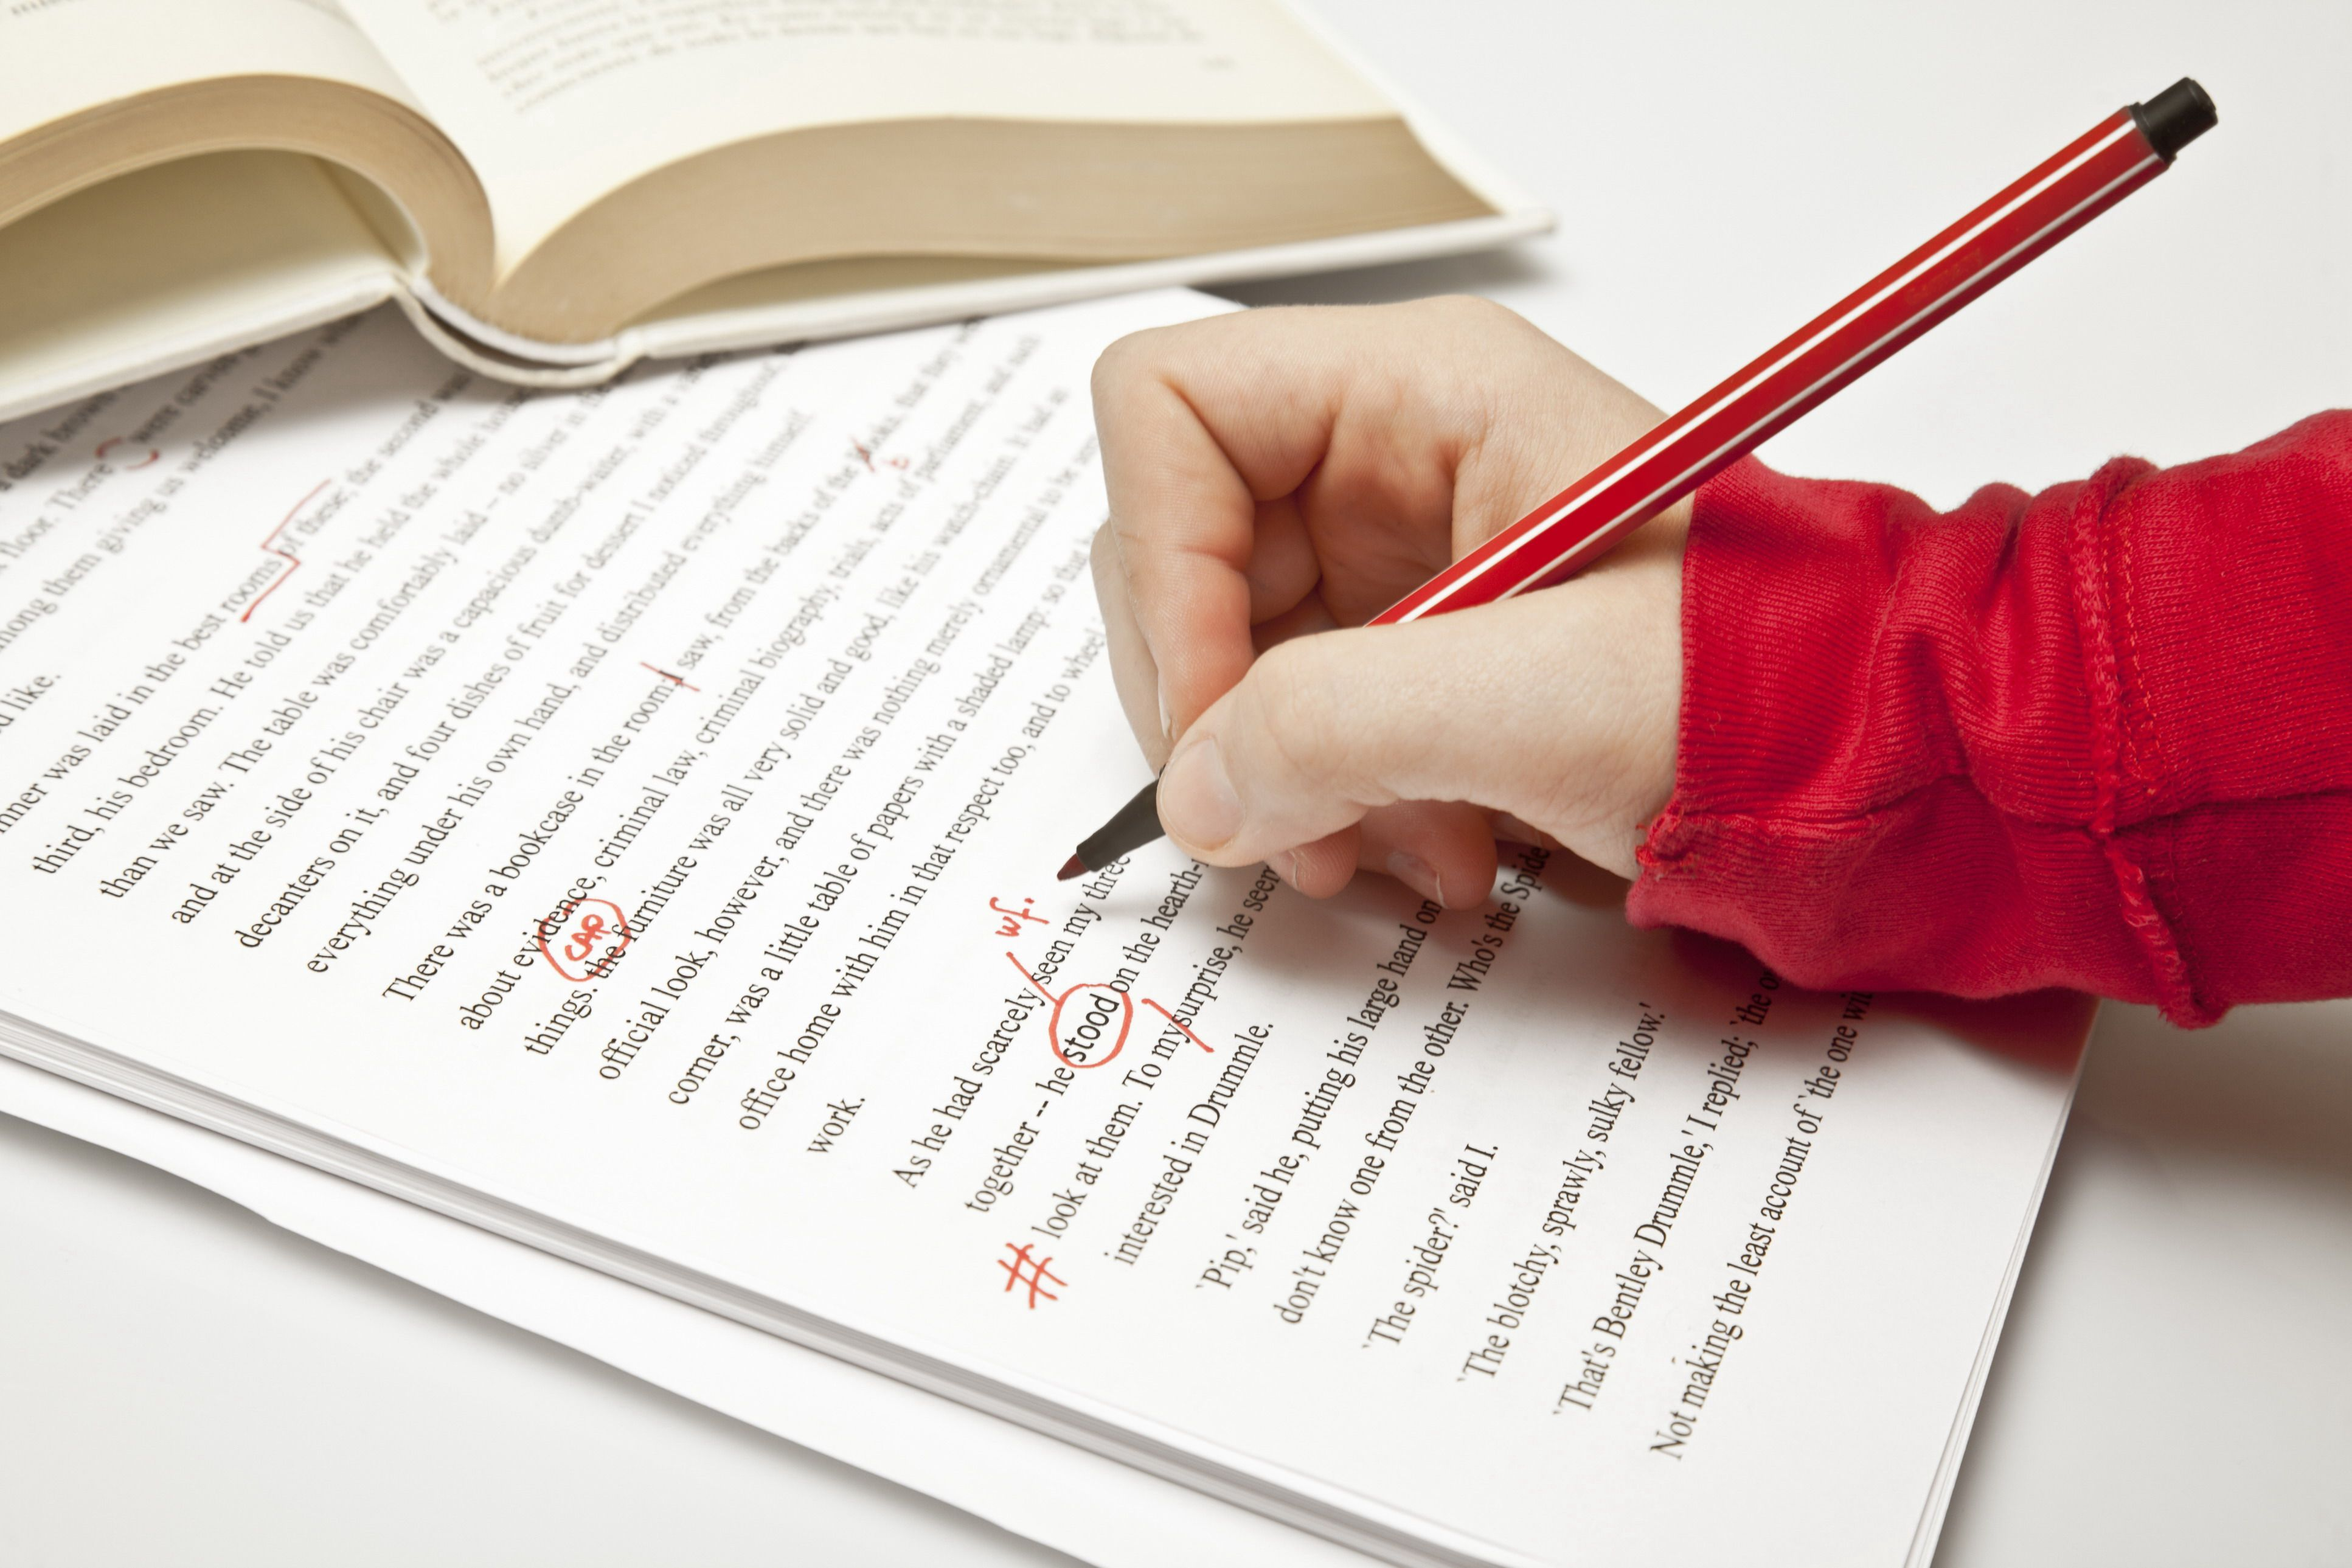 How an Essay Proofreader Can Improve Your Grades